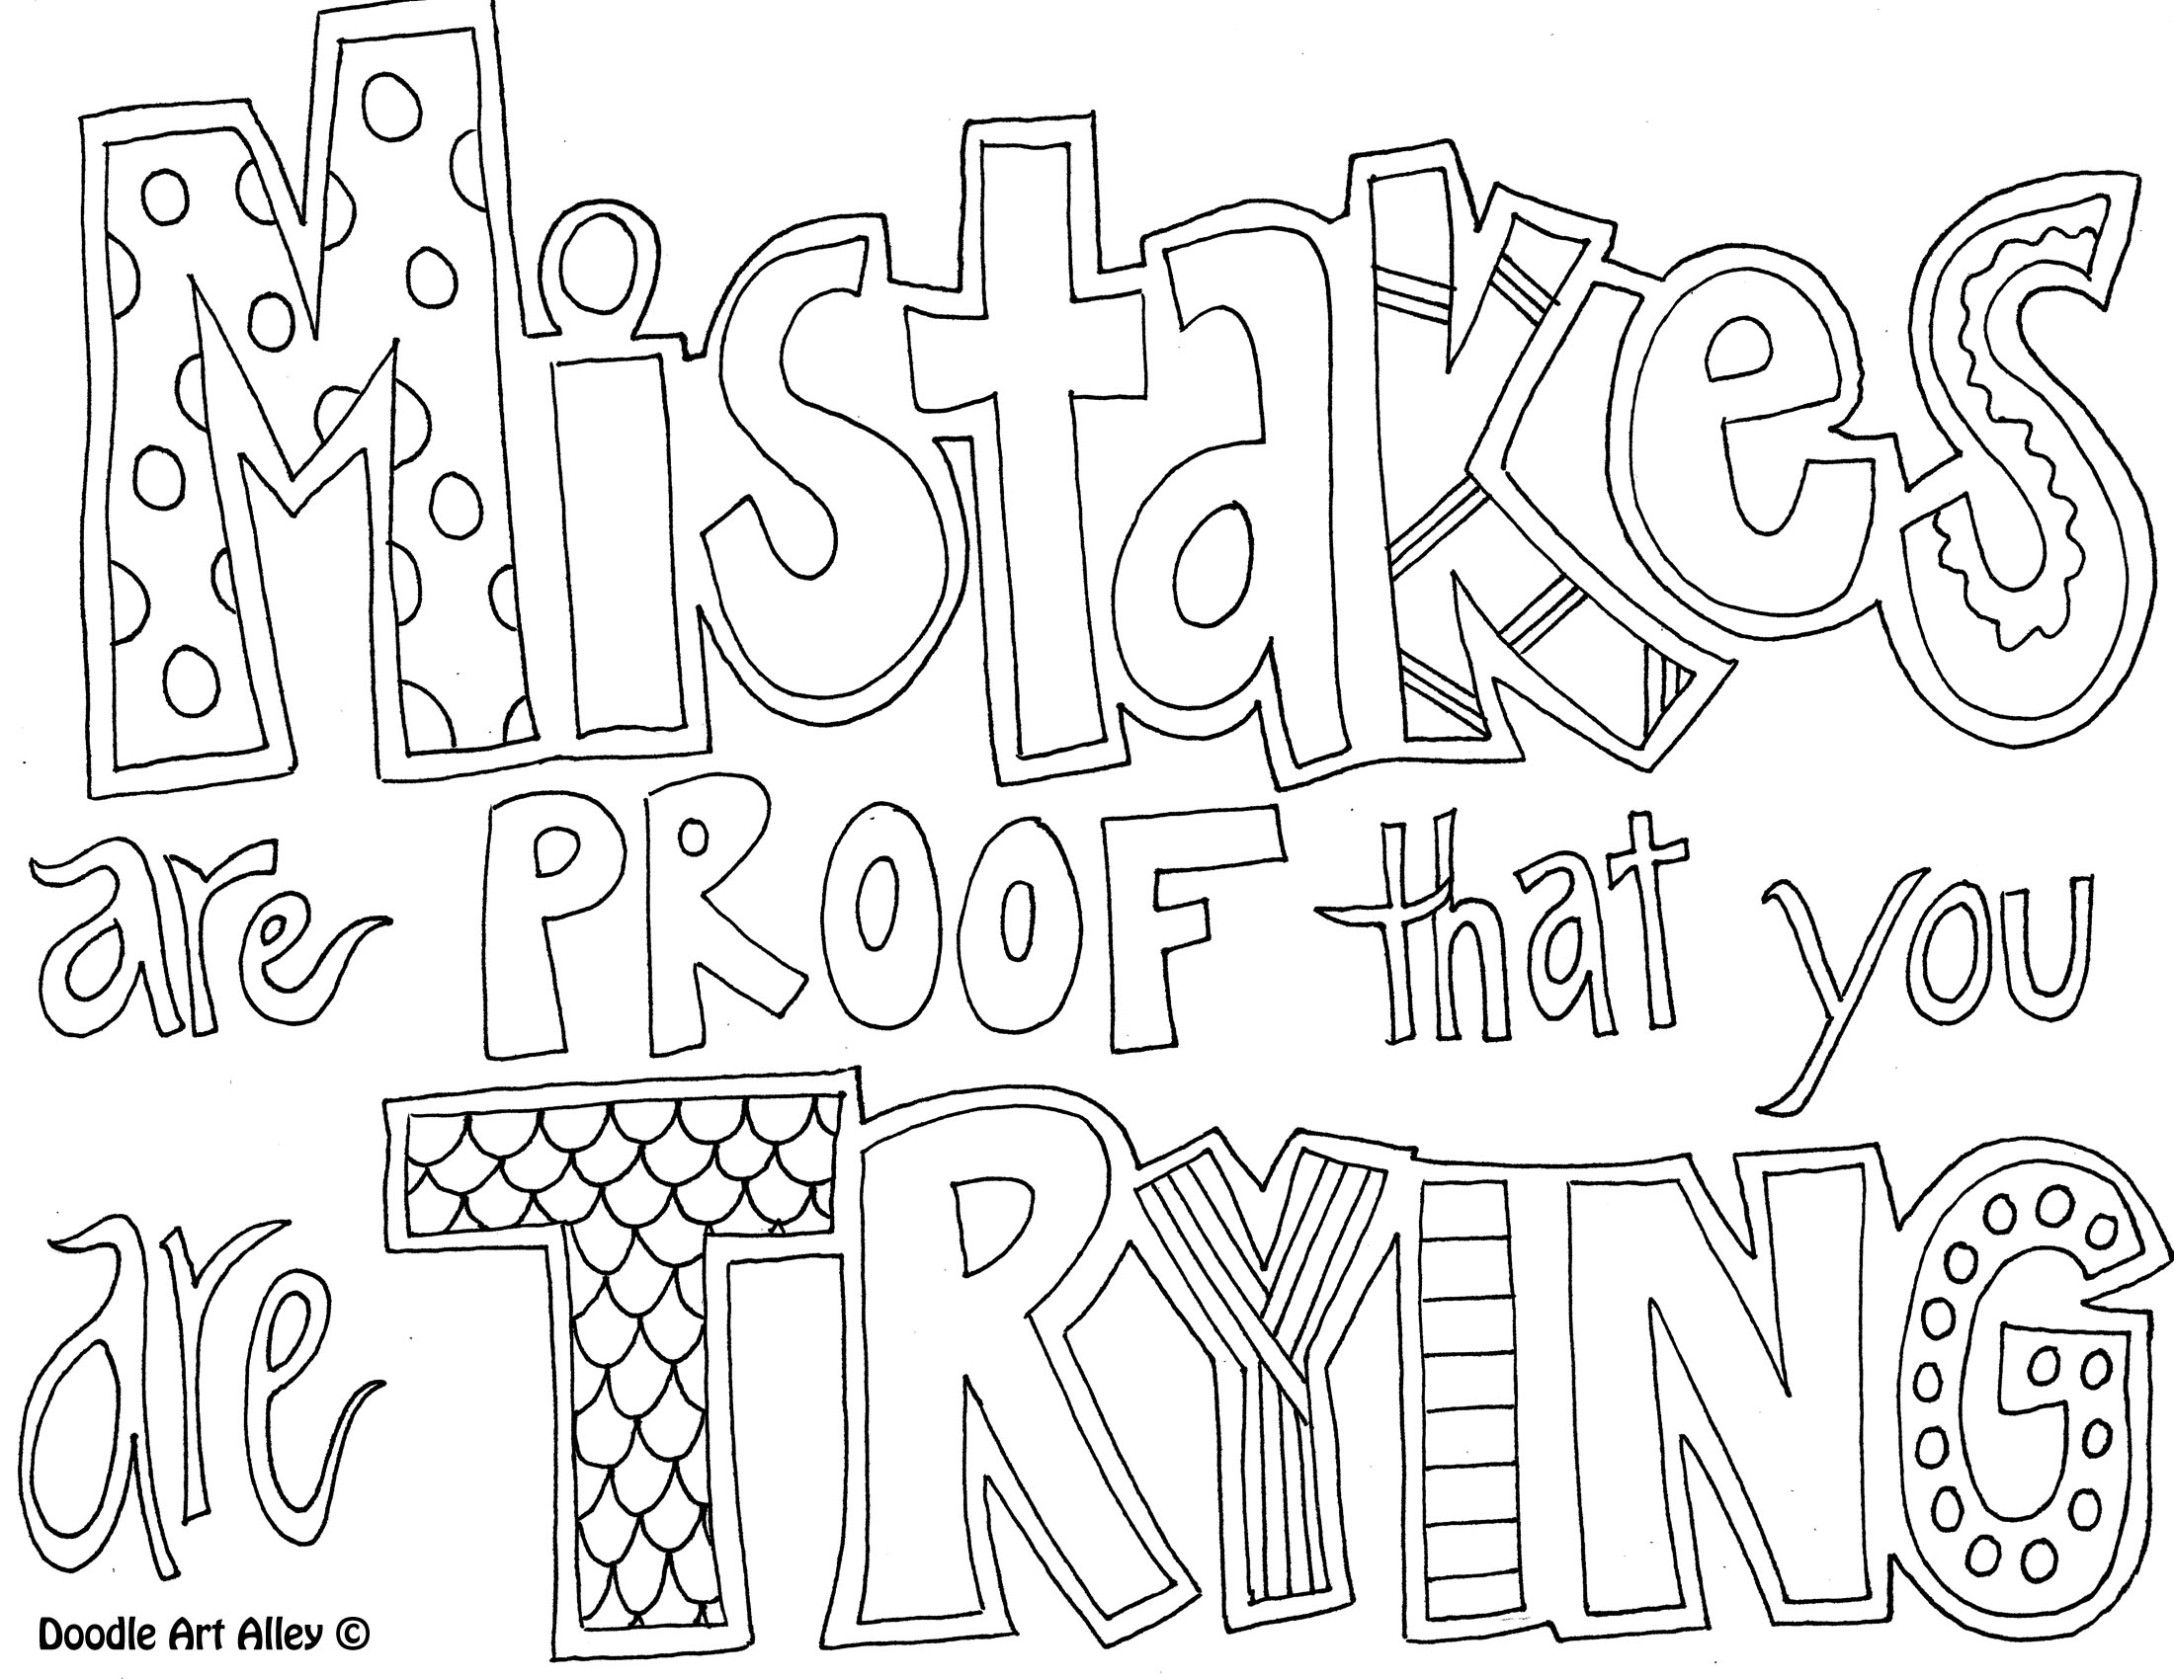 Perfect All Quotes Coloring Pages. Doodle Art Alley Has Amazing Coloring Pages. Ideas